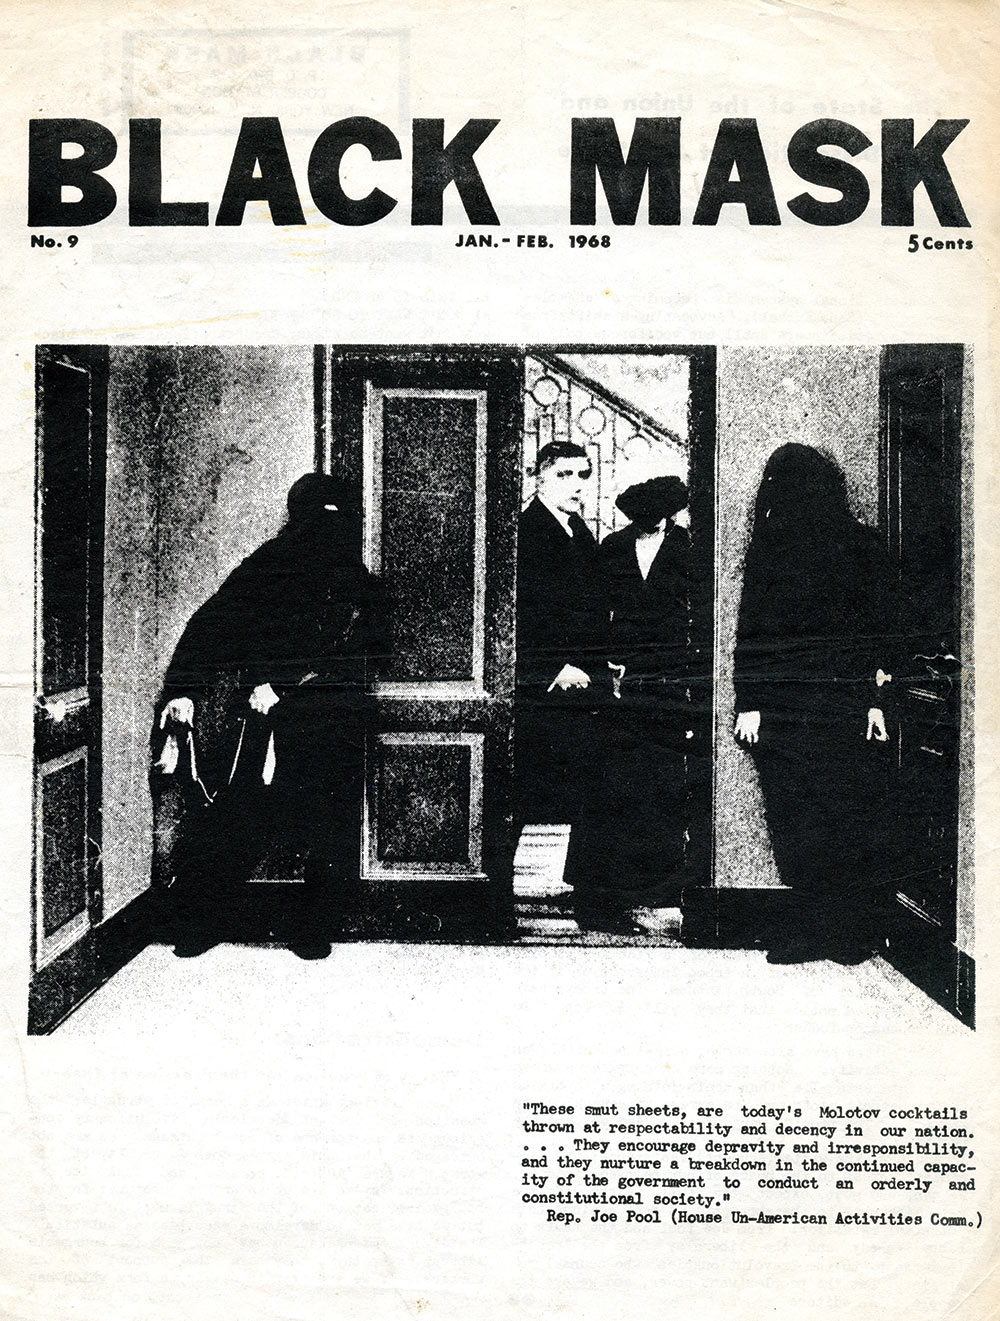 "Black Mask, Black Mask Issue No. 9, January-February 1968, Offset print on paper, 13 x 10"", Courtesy Sean Stewart/Babylon Falling"